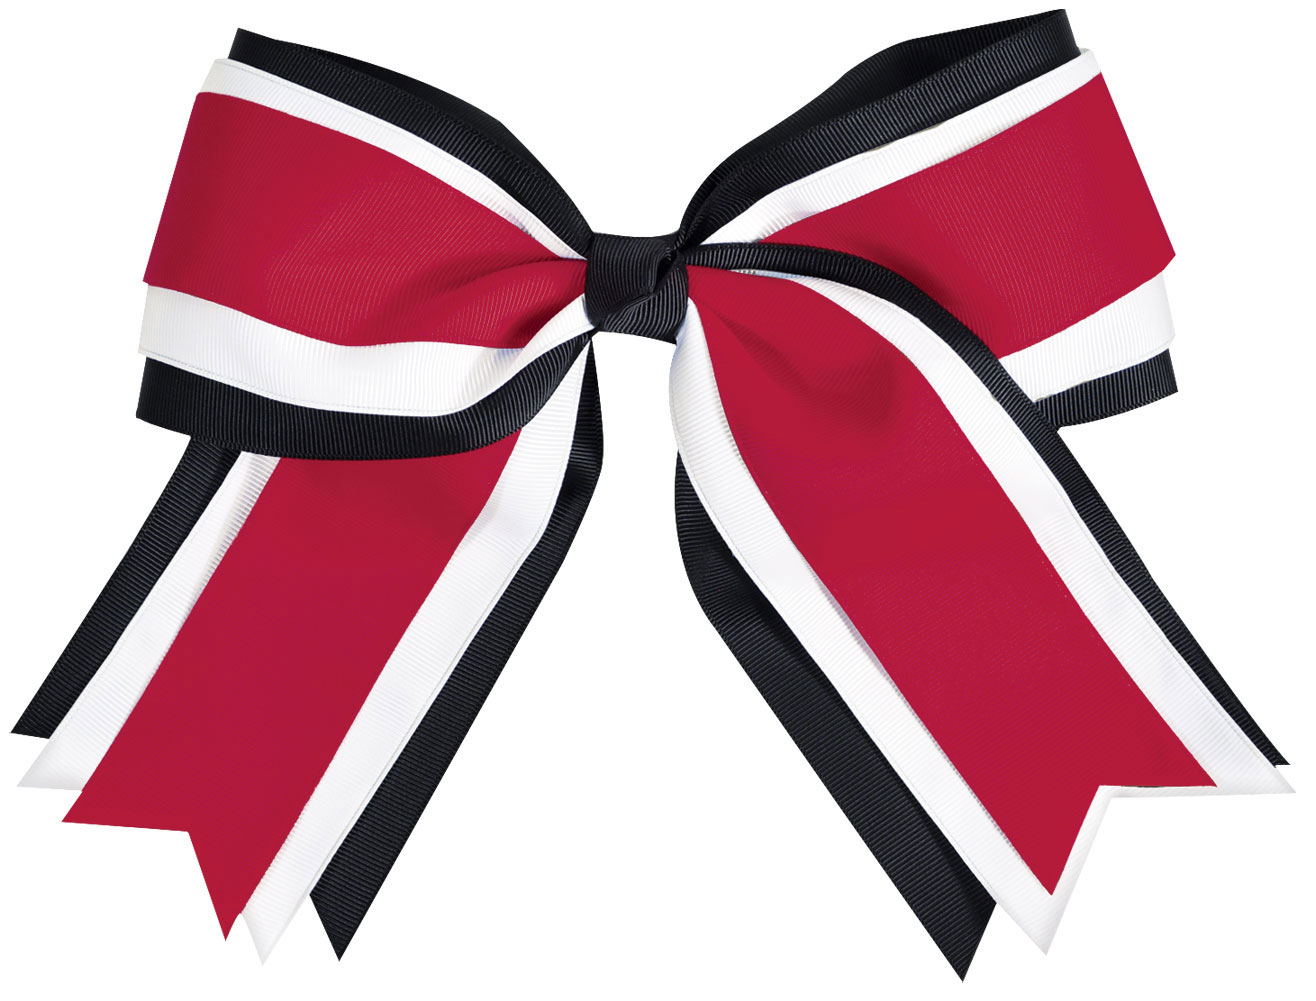 Ribbon clipart cheerleader. Chass jumbo color hair